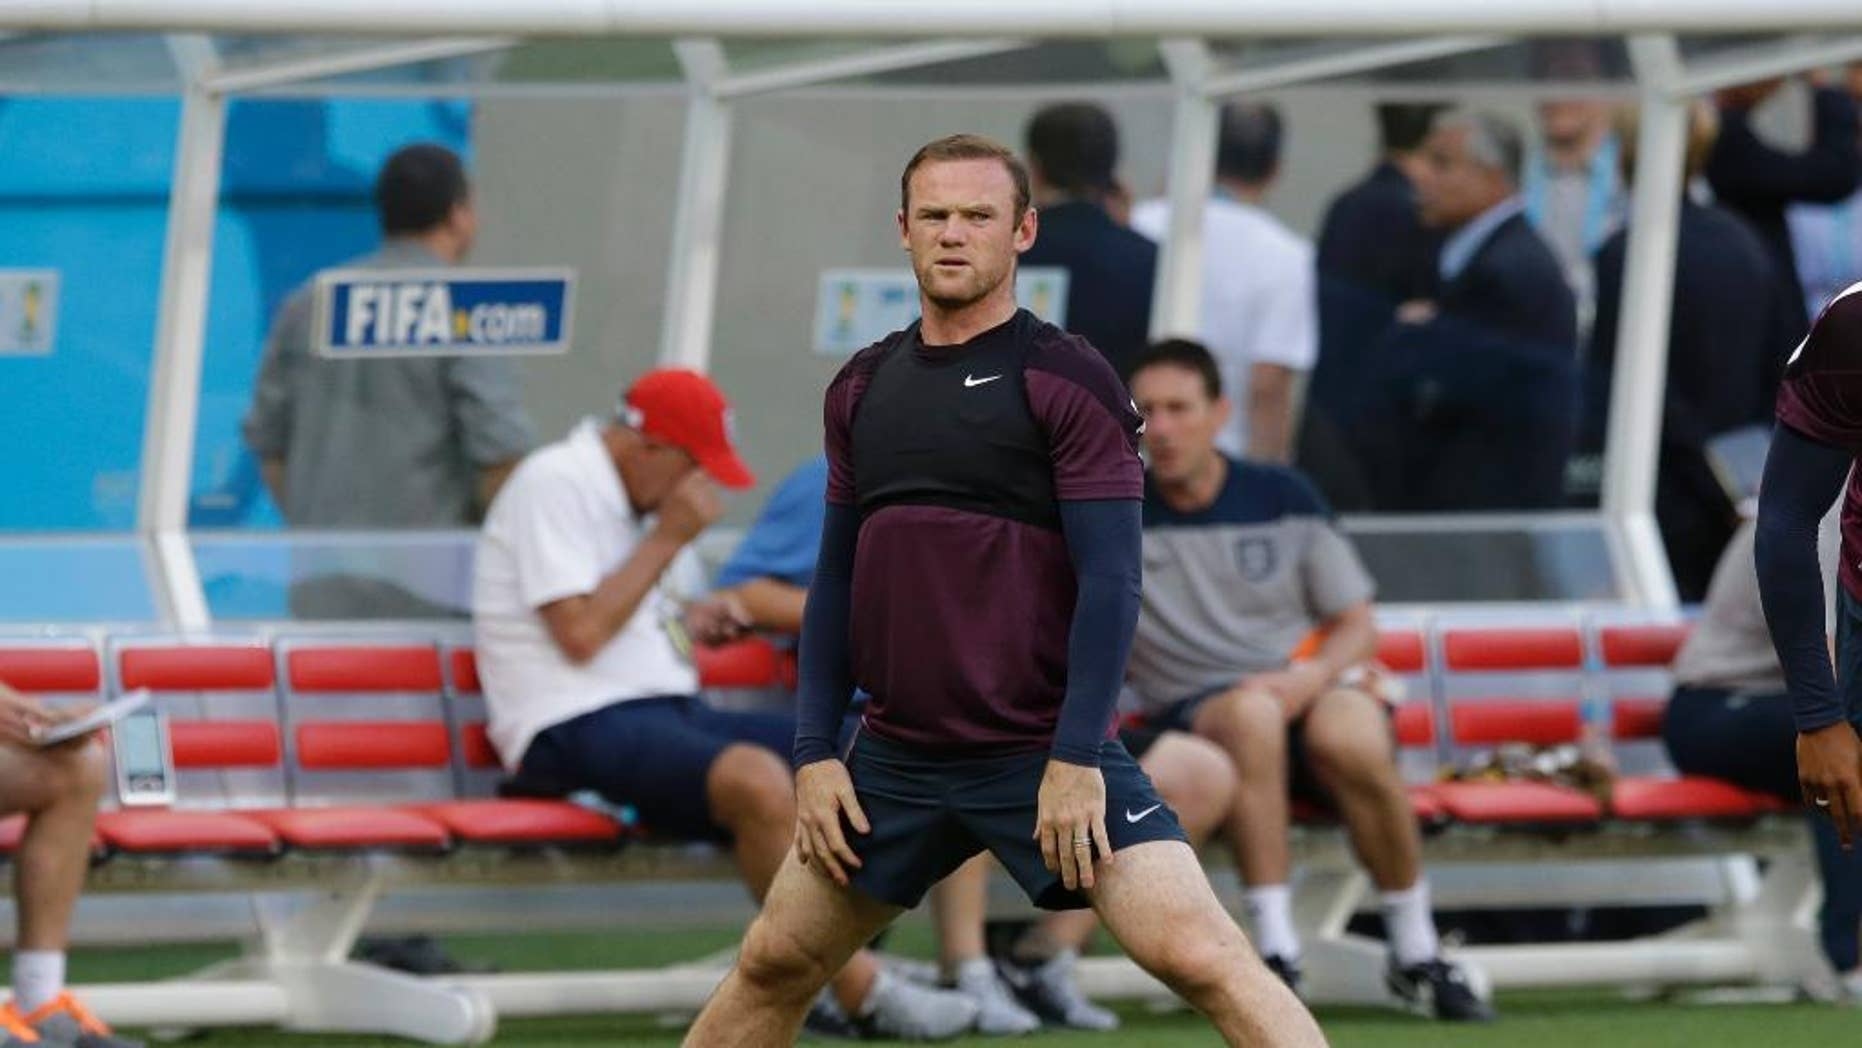 England's Wayne Rooney stretches as he takes part in a training session of the England national soccer team at the Arena da Amazonia in Manaus, Brazil, Friday, June 13, 2014.  England play Italy in group D of the 2014 soccer World Cup at the stadium on Saturday.  (AP Photo/Matt Dunham)